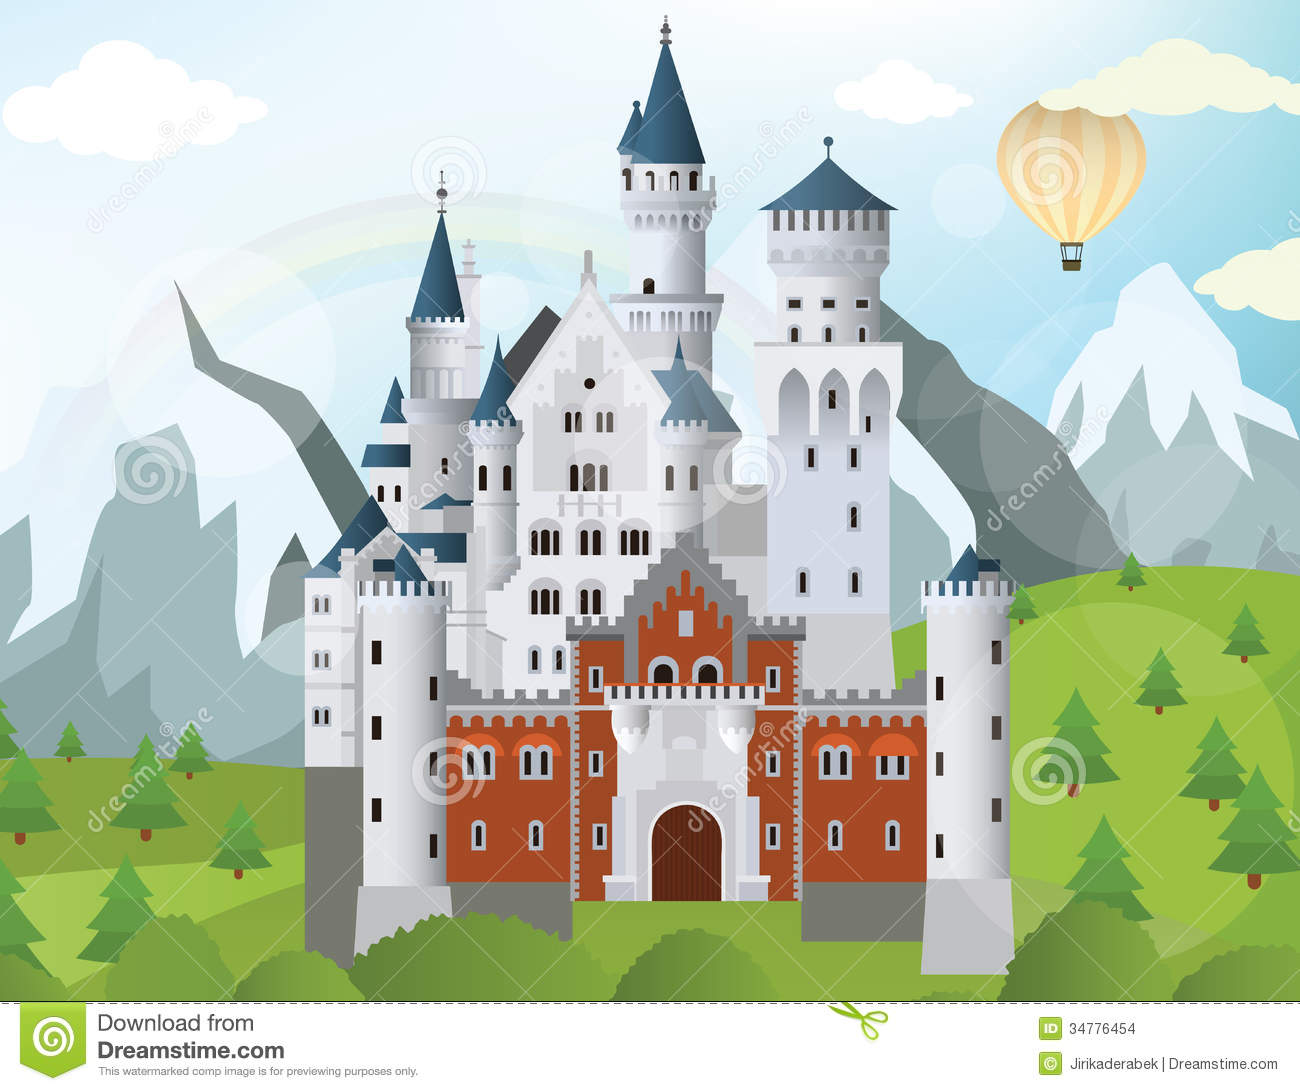 Vector illustration of fairytale castle in the mountains.